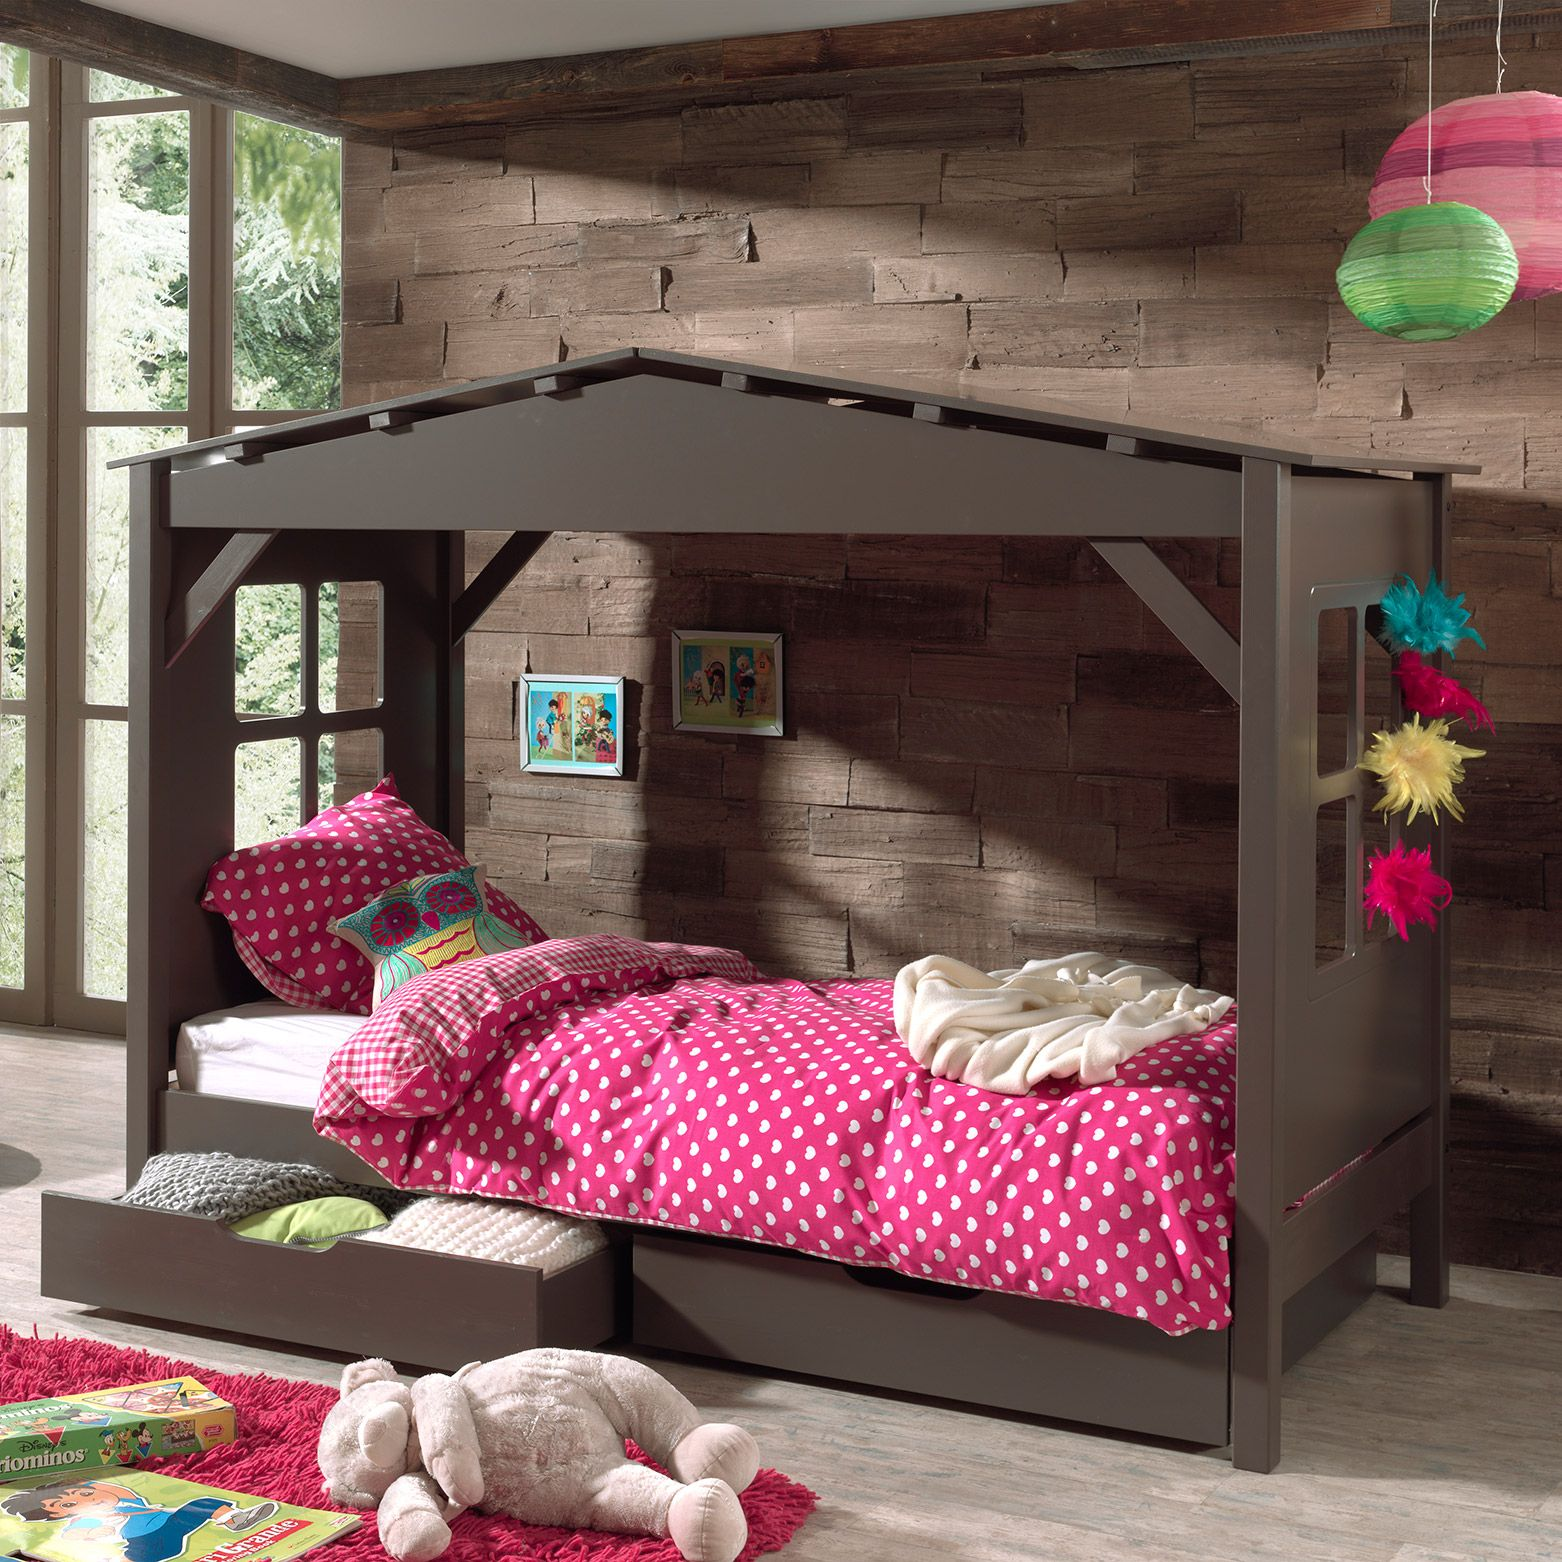 lit cabane en pin massif 90 x 200 cm avec 2 tiroirs de rangement pino ps. Black Bedroom Furniture Sets. Home Design Ideas